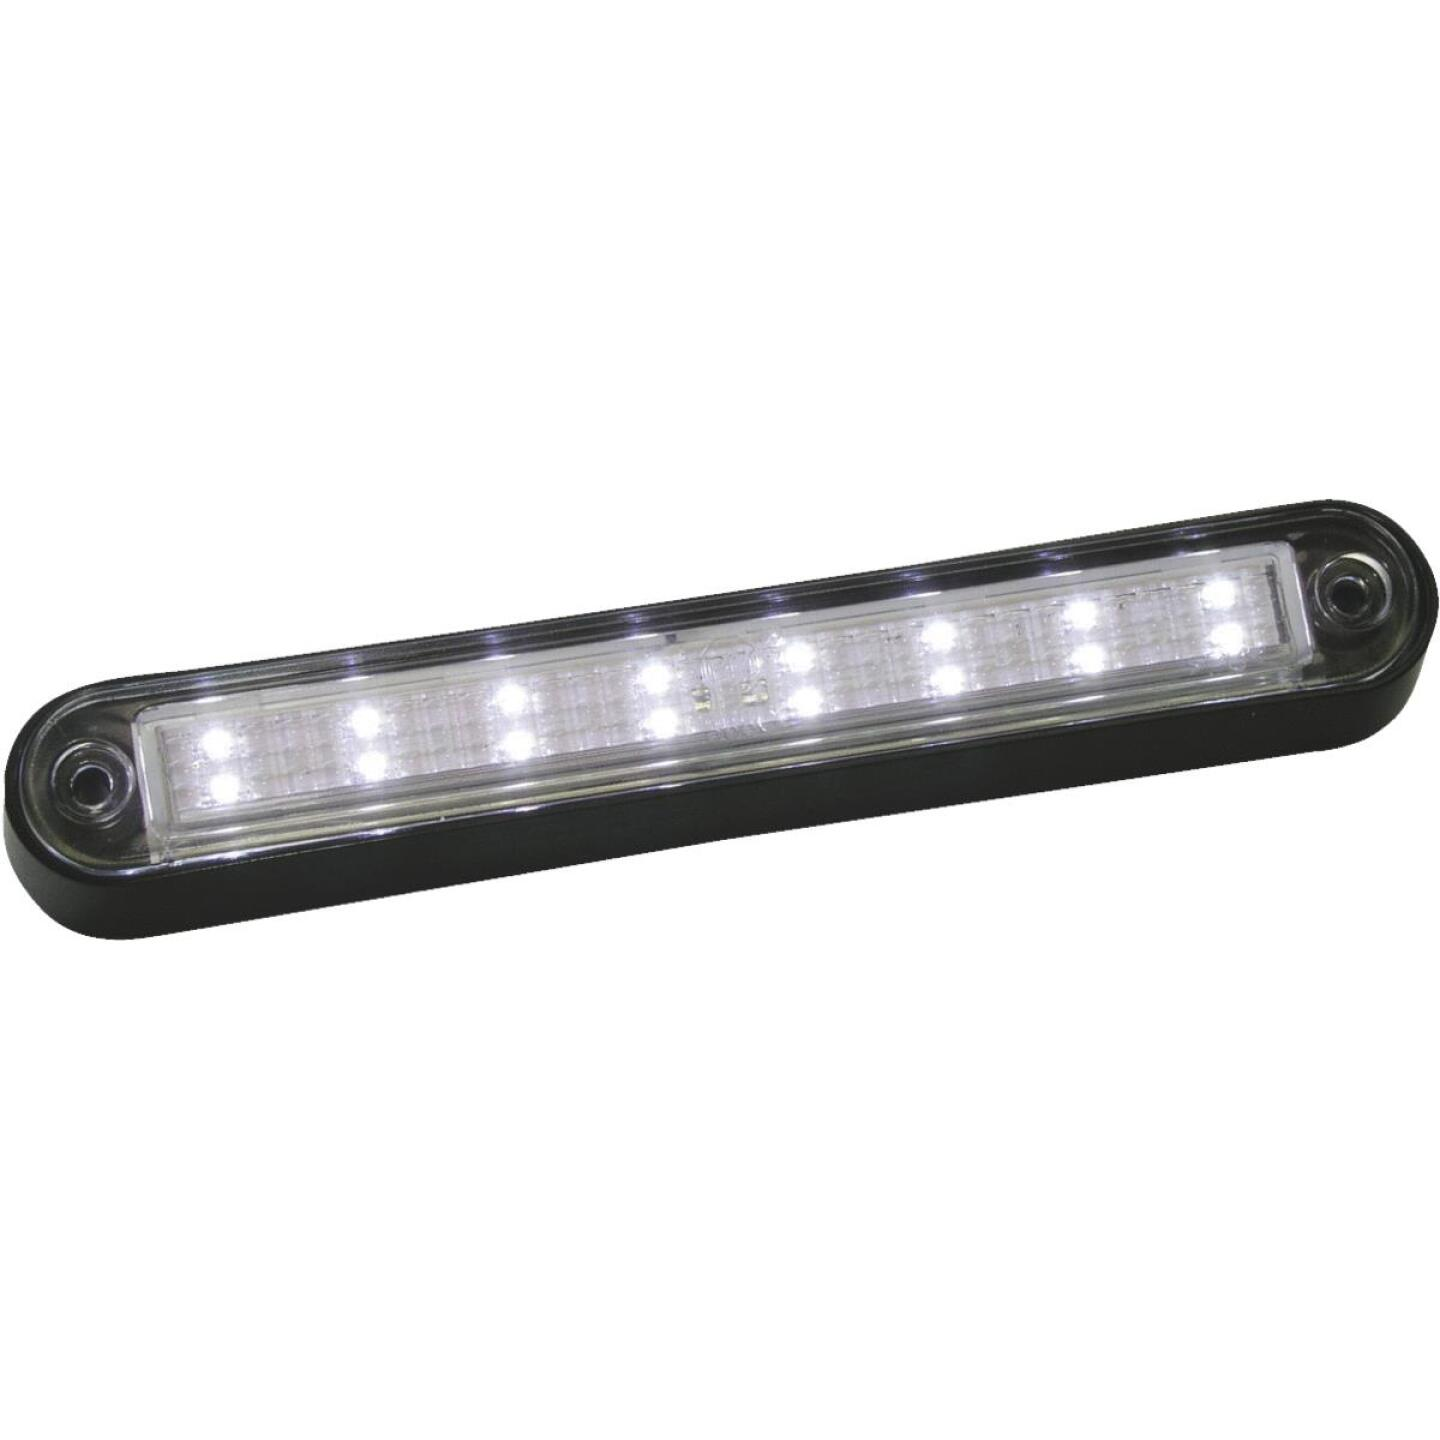 Peterson 12-24 V. LED Internal and External Aisle Light Image 1